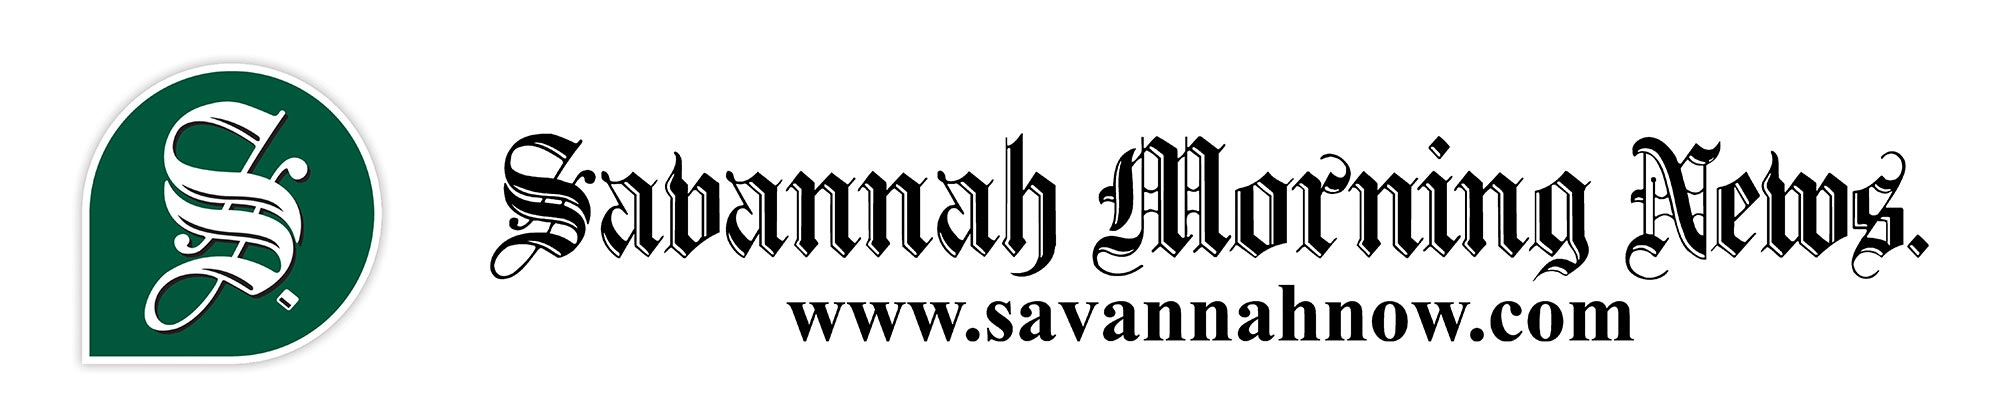 Savannah Morning News Logo